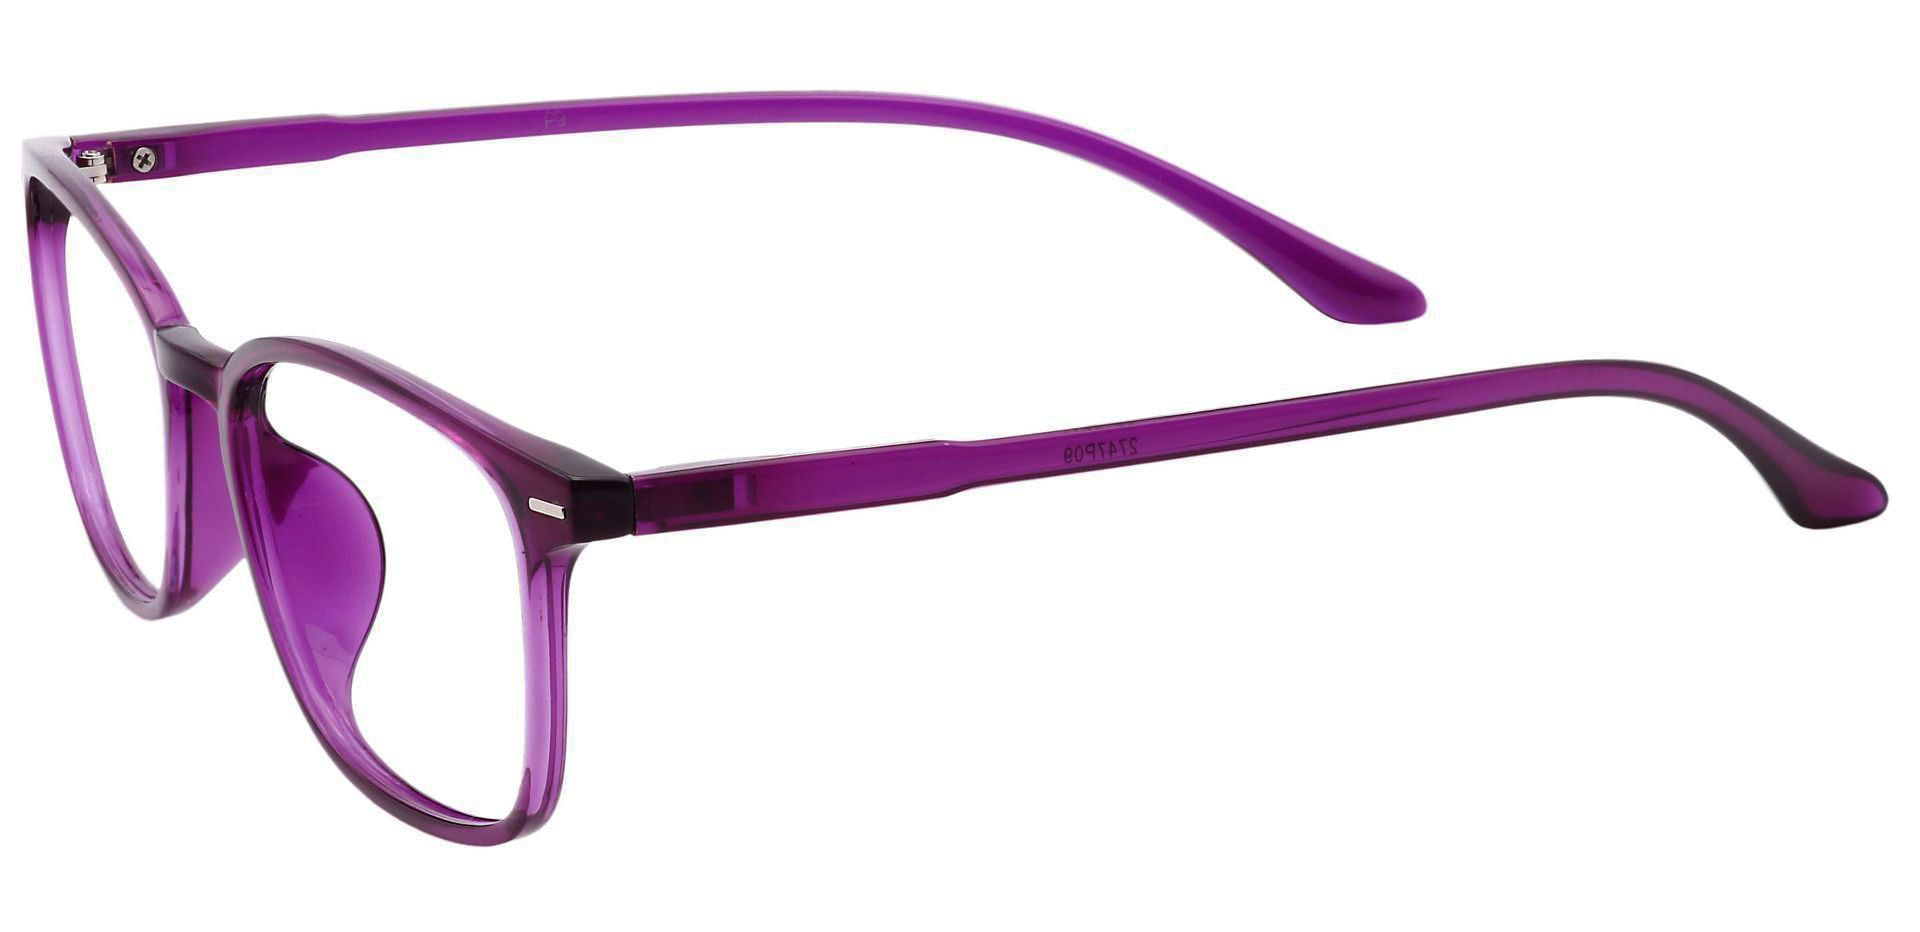 Cabo Oval Lined Bifocal Glasses - Grape